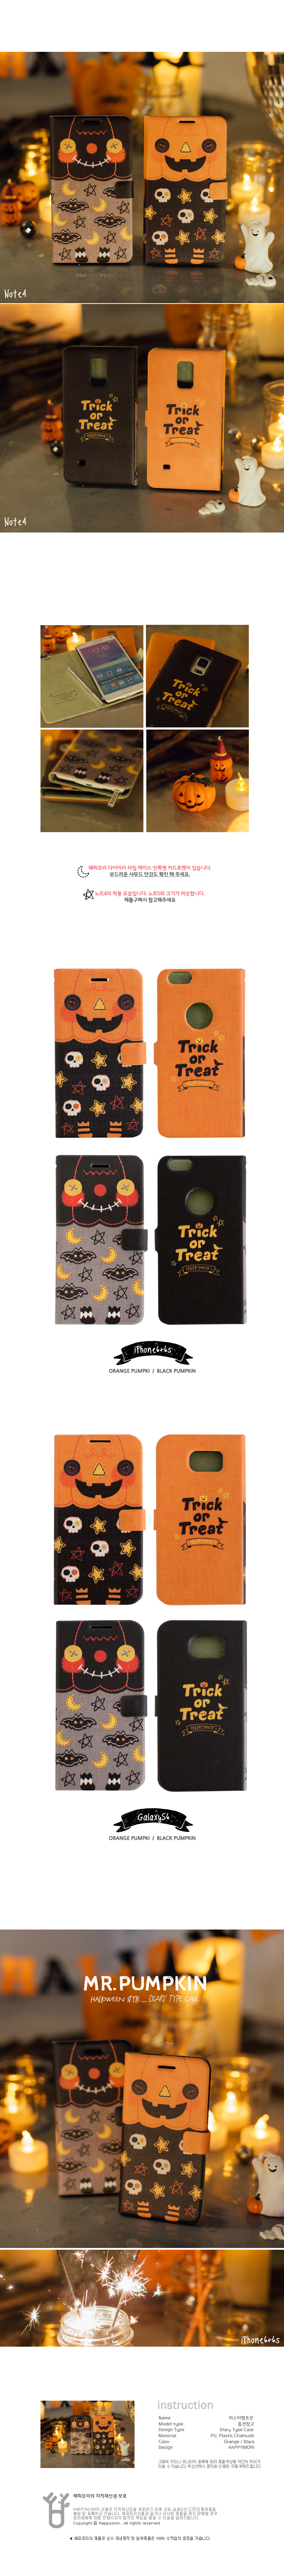 [HAPPYMORI]Flip Cover Case_Mr.Pumpkin(iPhone6Plus,iPhone6Plus_s,Galaxy S6Edge,Galaxy S6,Galaxy Note4)